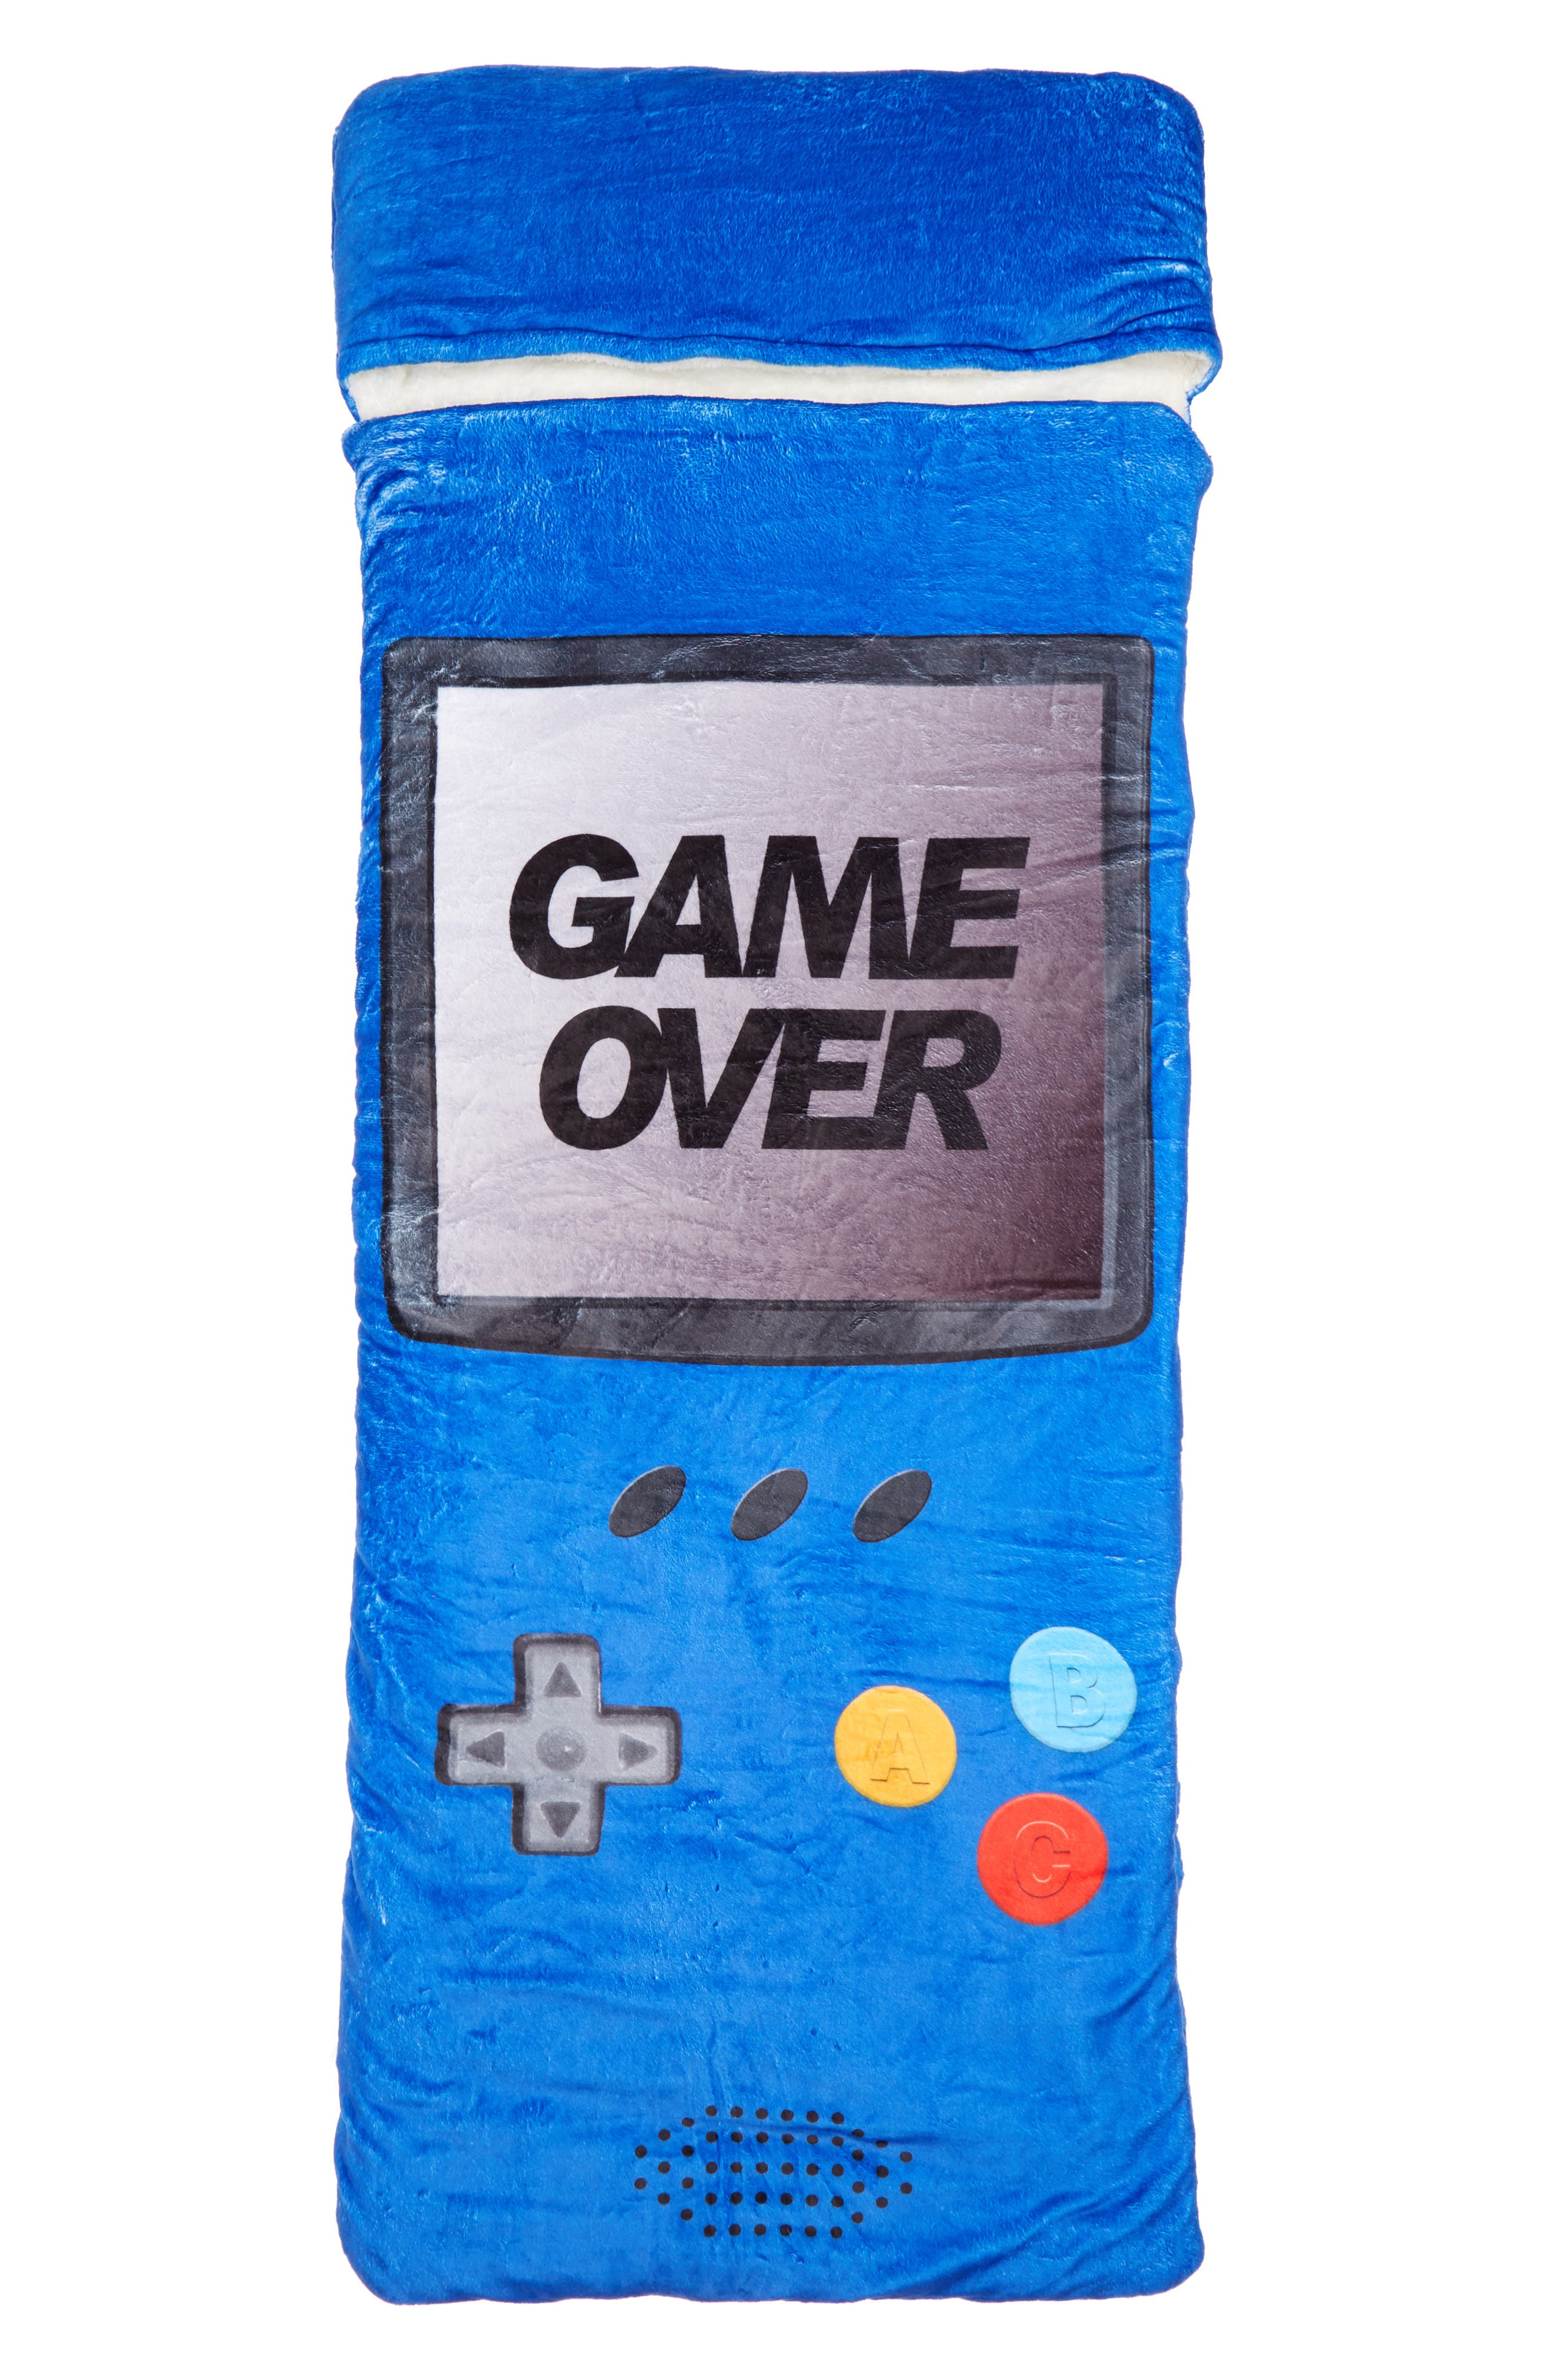 Game Over Sleeping Bag,                         Main,                         color, Blue